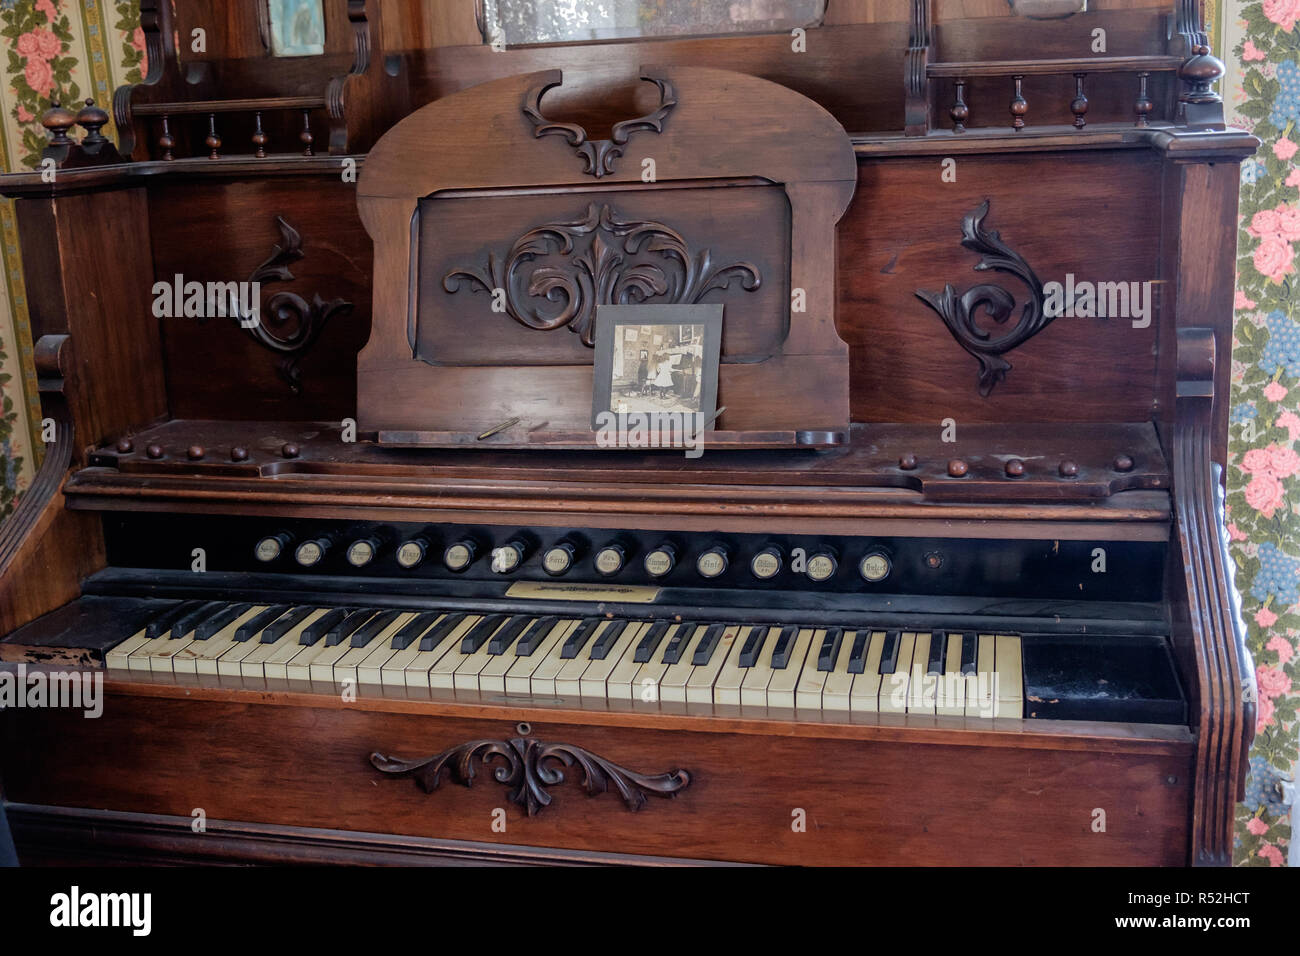 Antique  pump organ with sound buttons and piano keyboard. Old framed photo & vintage floral wall paper. Interior of Historic Texan home, McKinney. - Stock Image